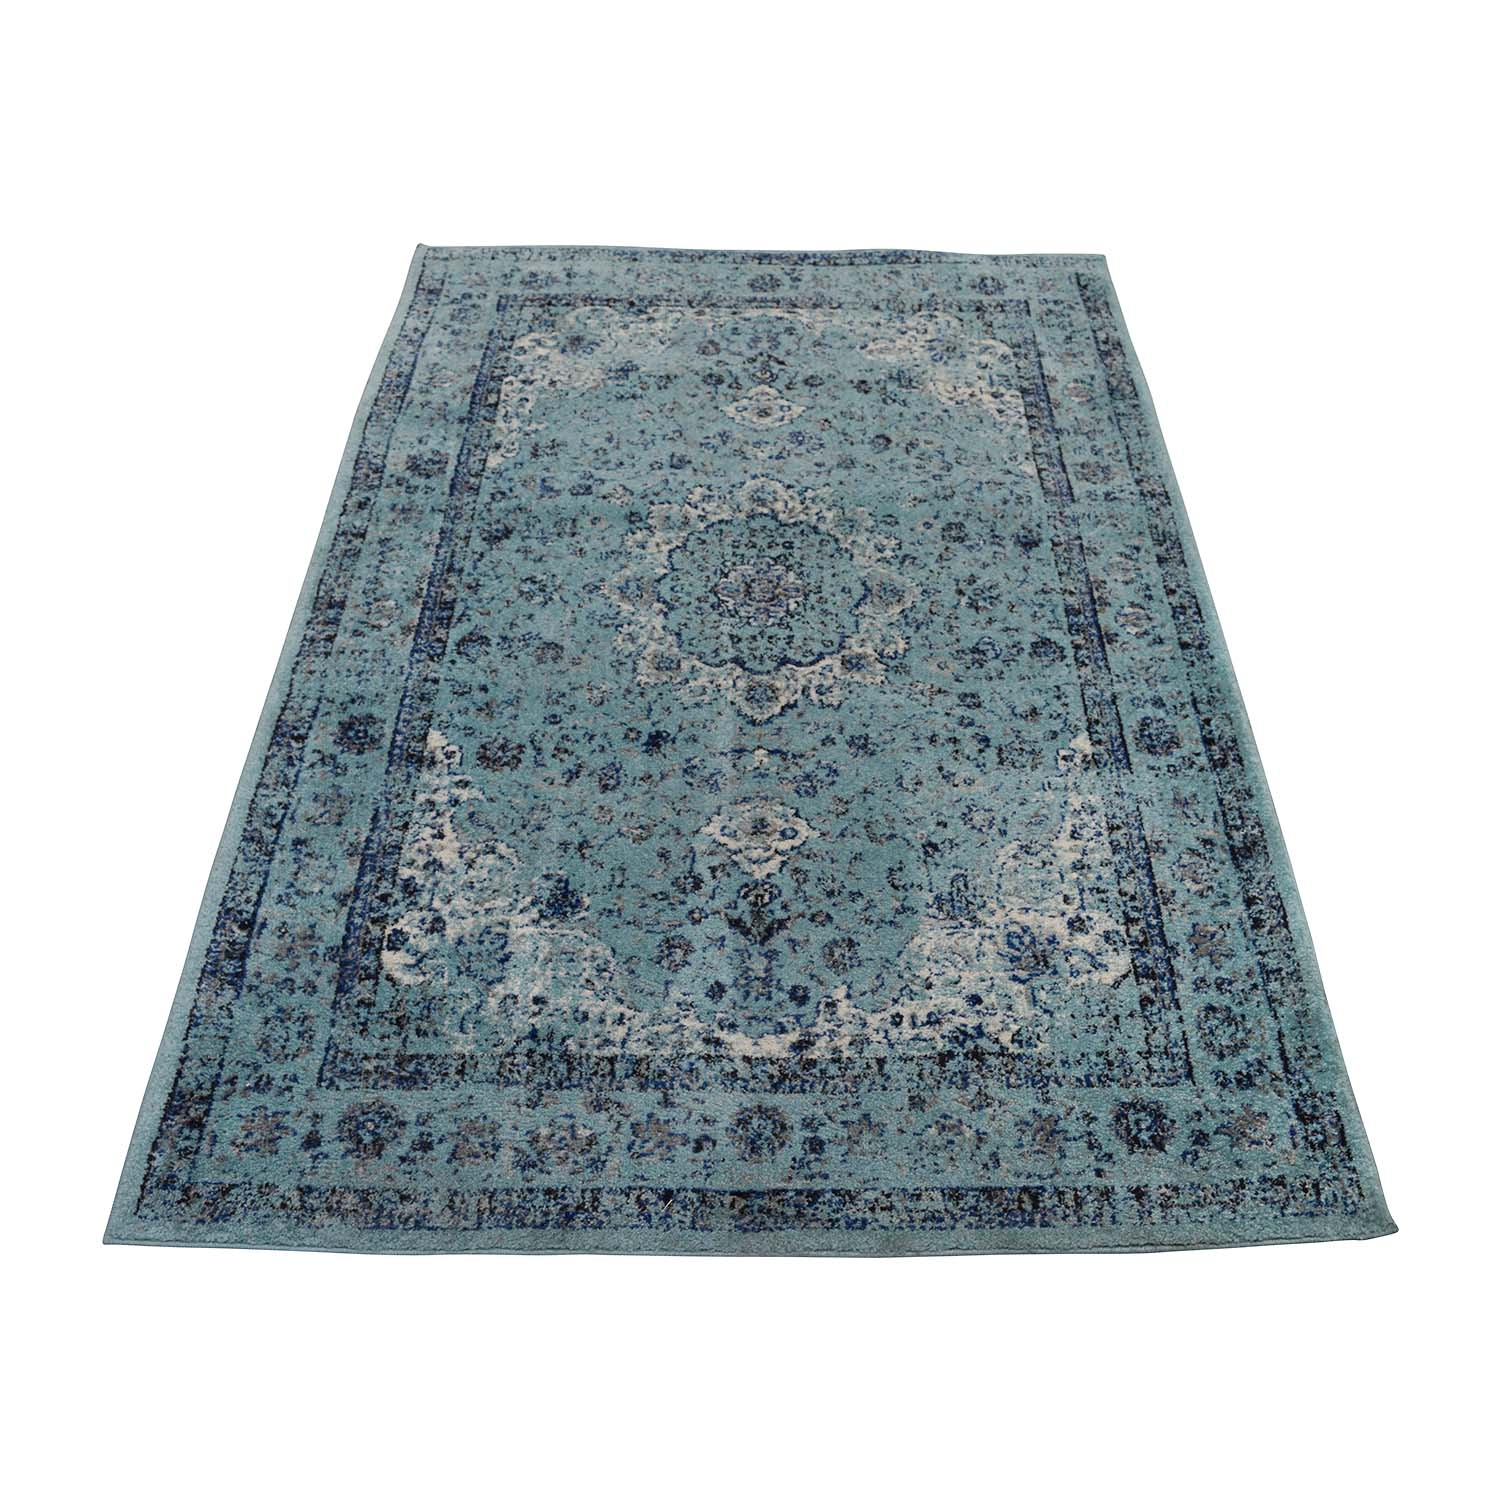 Safavieh Safavieh Turquoise Navy and White Rug for sale